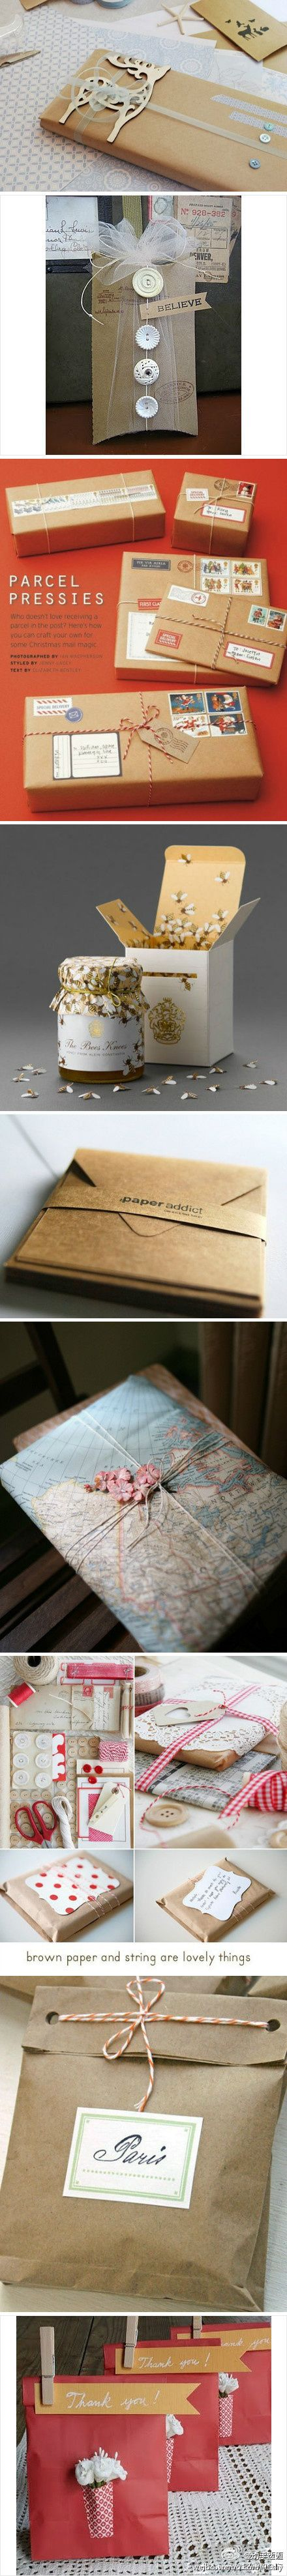 Gift and package wrapping: Giftwrap, Gift Wrapping, Gift, Creative Gift, Wrapping Ideas, Packaging Ideas, Wrapping Gift